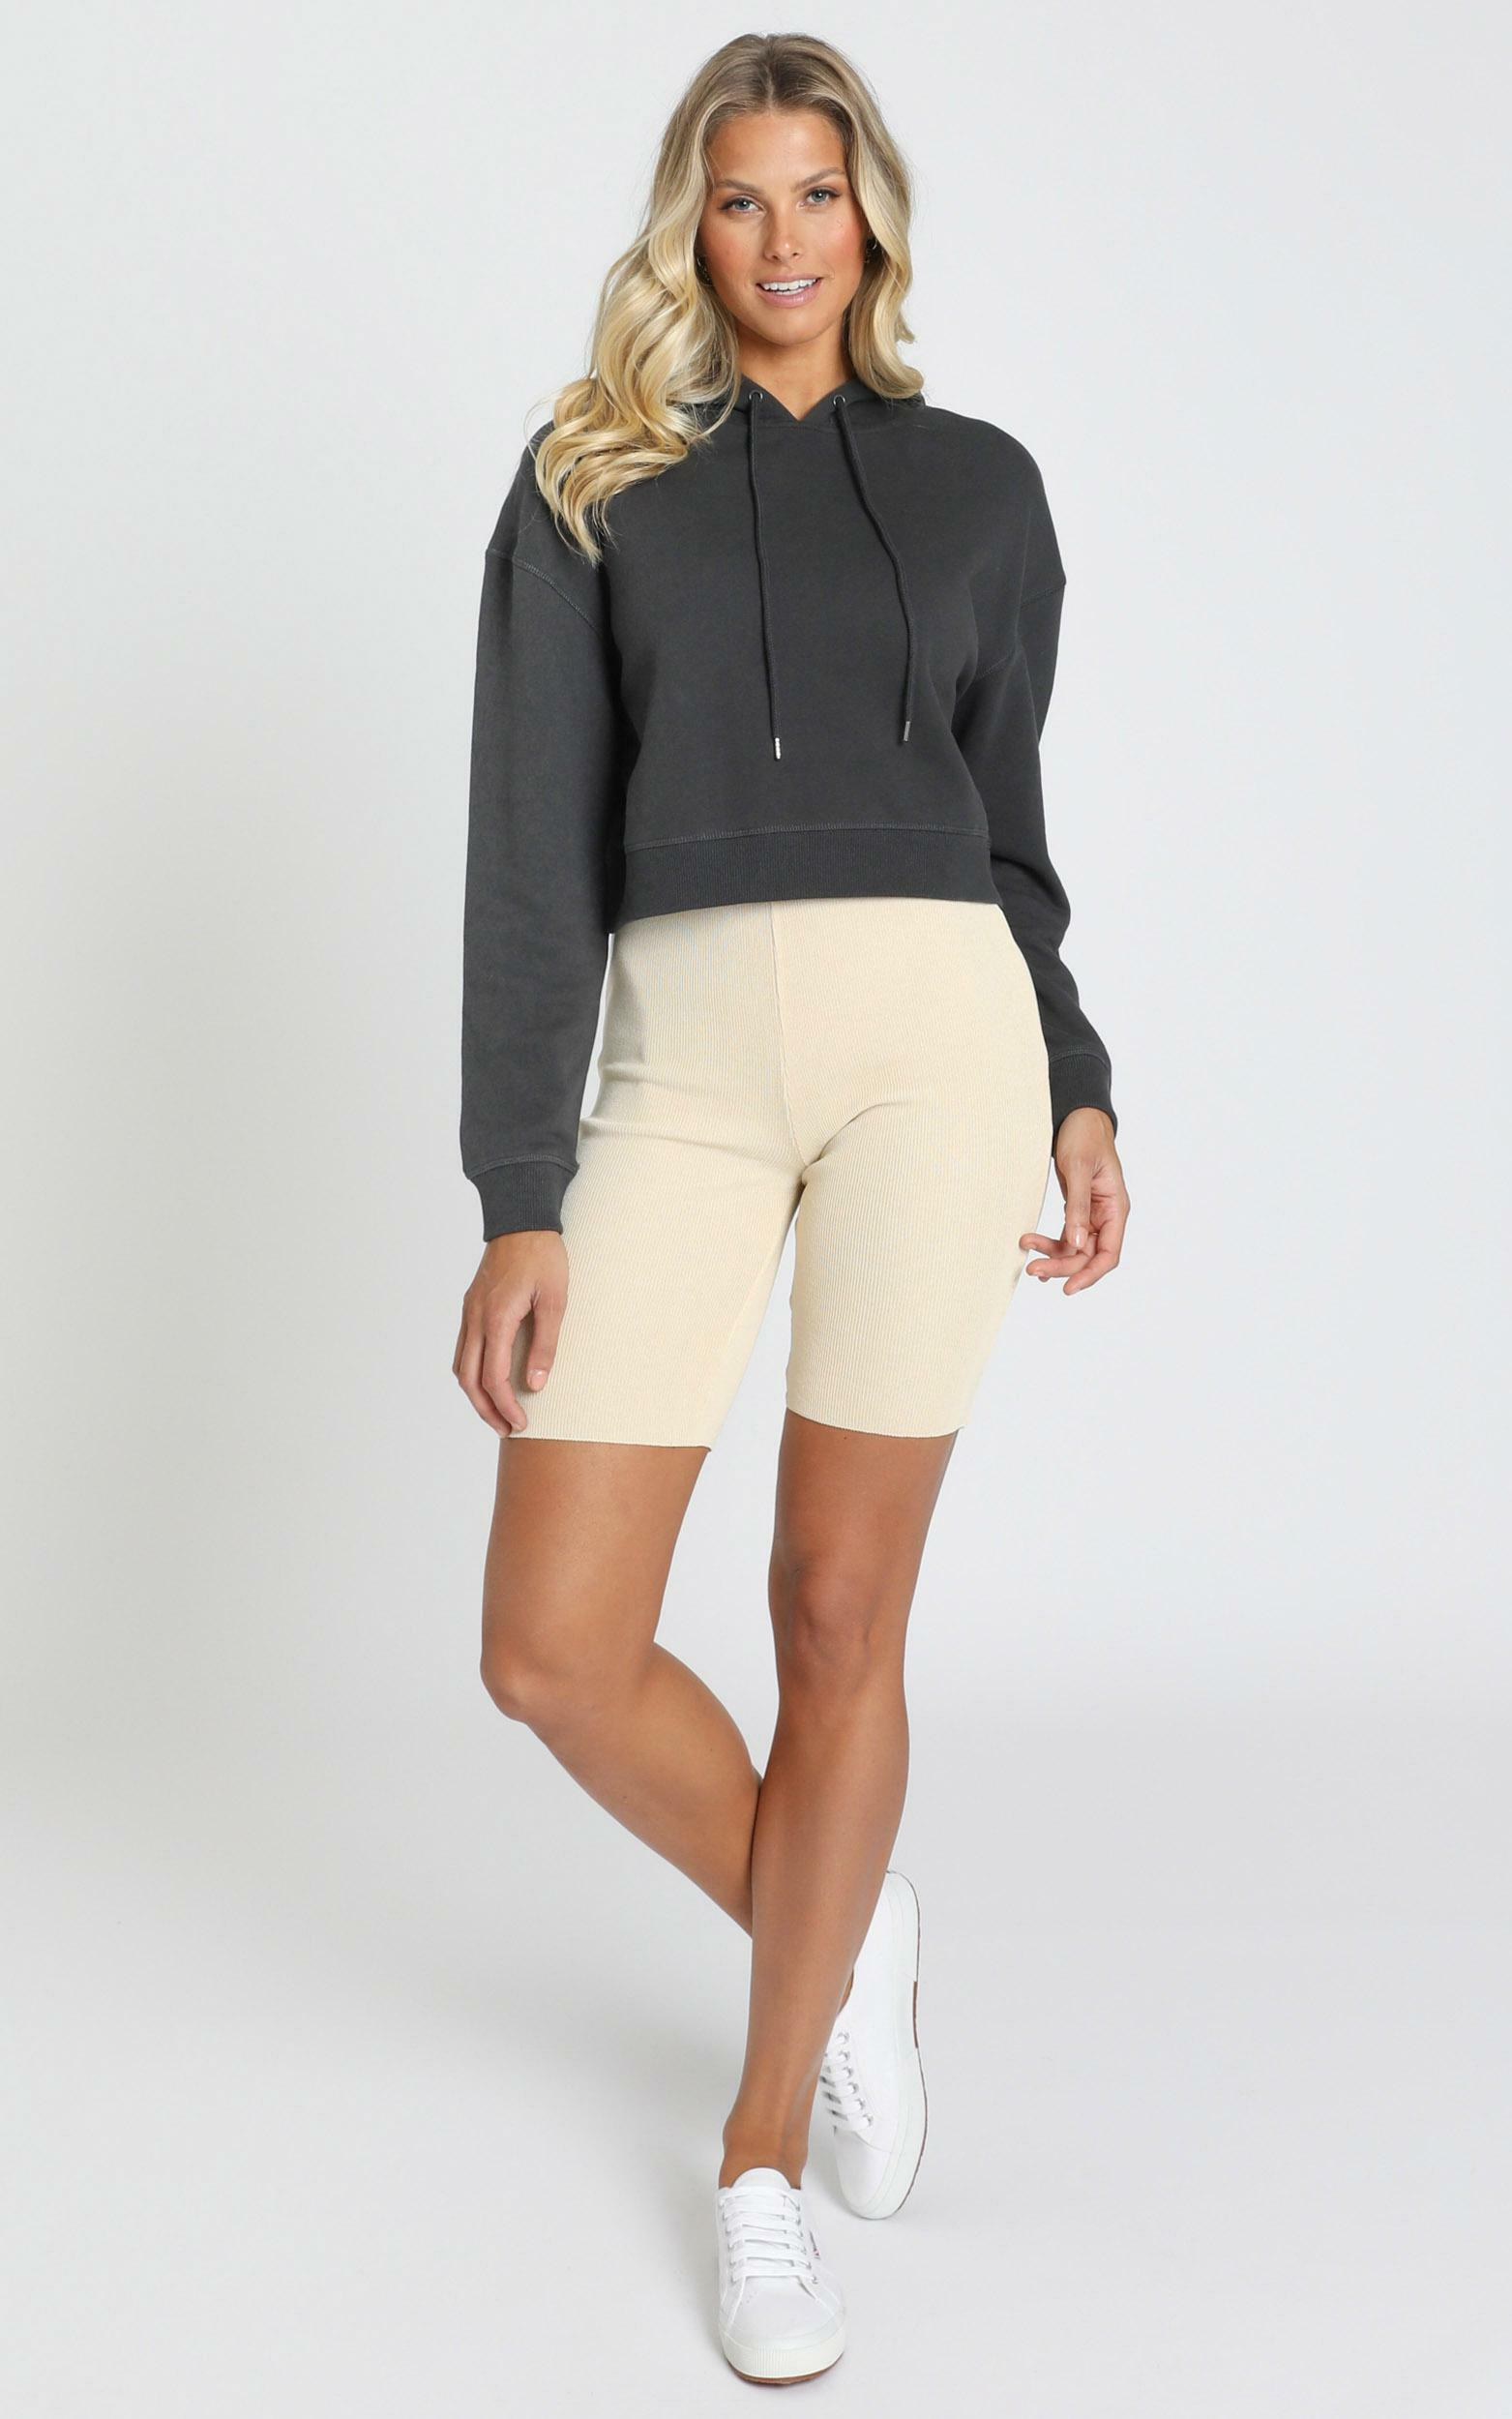 AS Colour - Crop Hood in Coal - XS, Charcoal, hi-res image number null